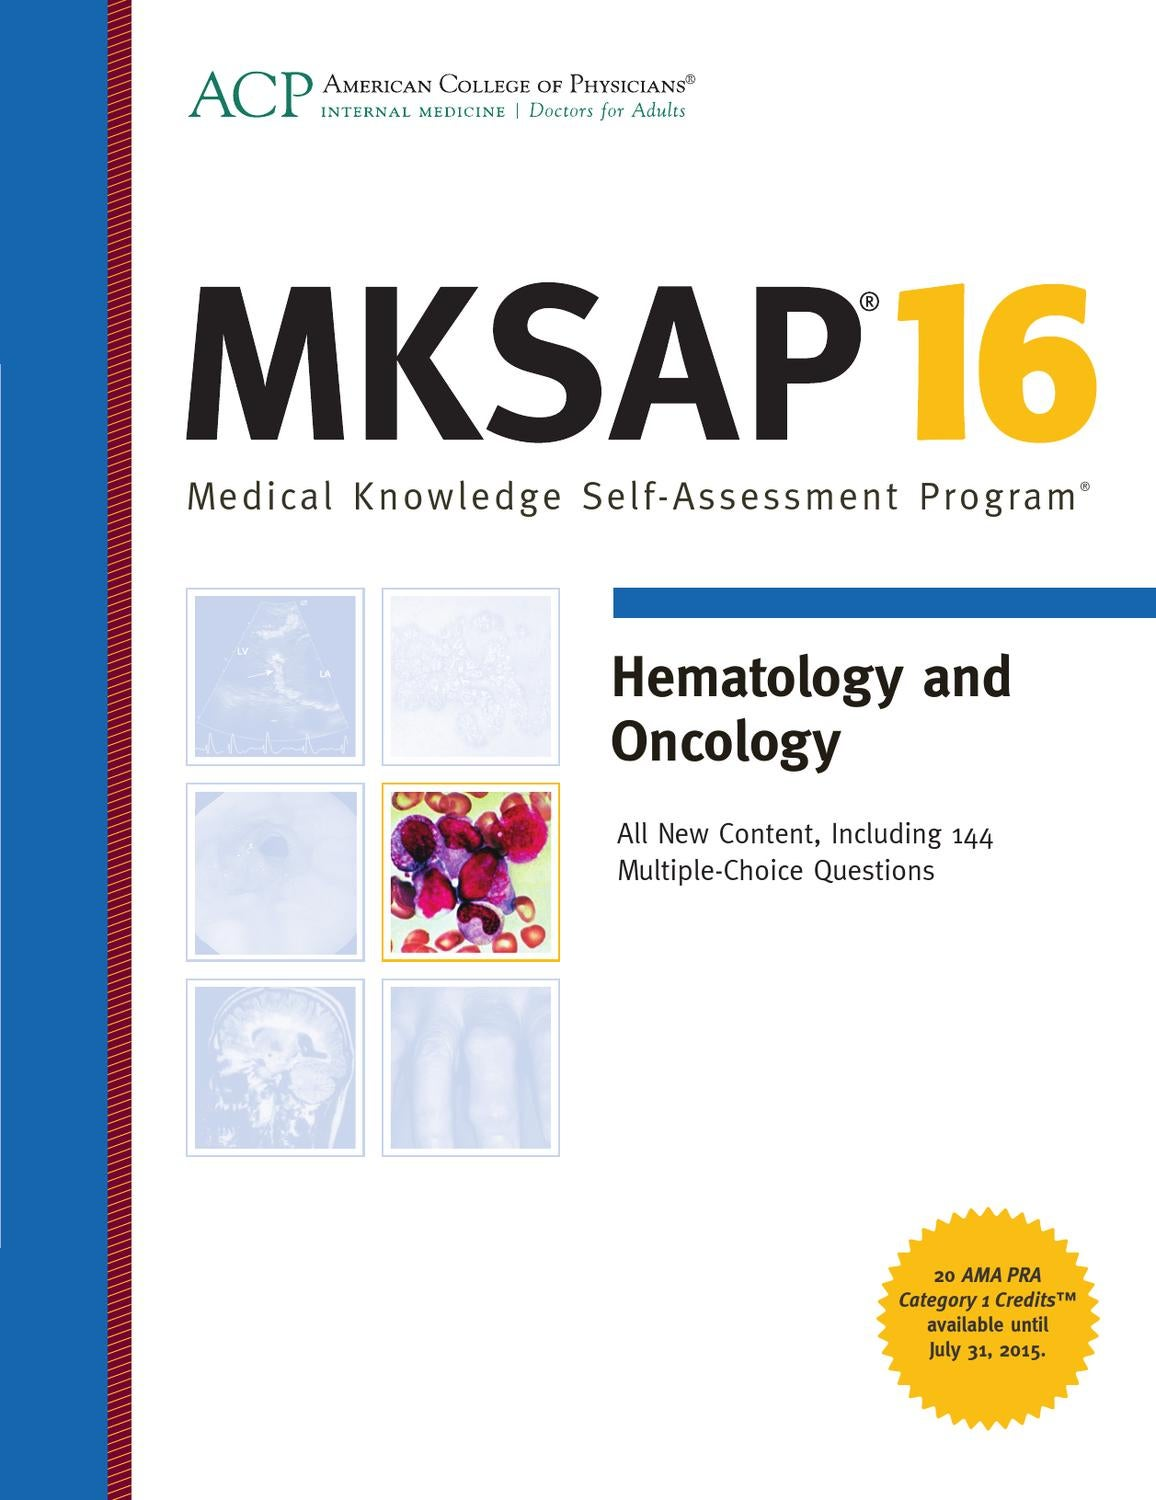 MKSAP 16 Sample - Hematology and Oncology by American College of